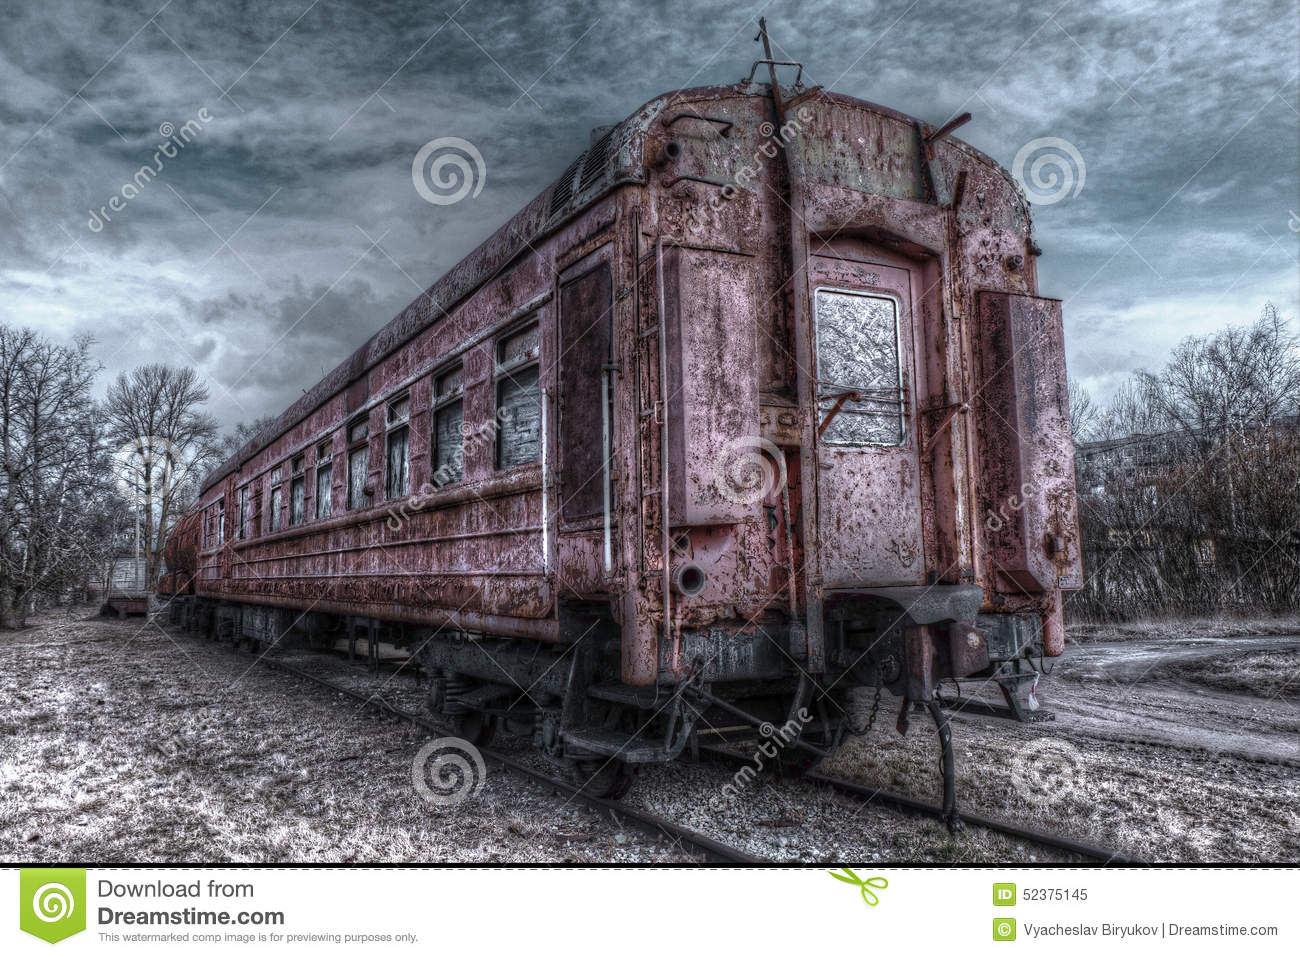 Old Train Wagon Stock Photo - Image: 52375145